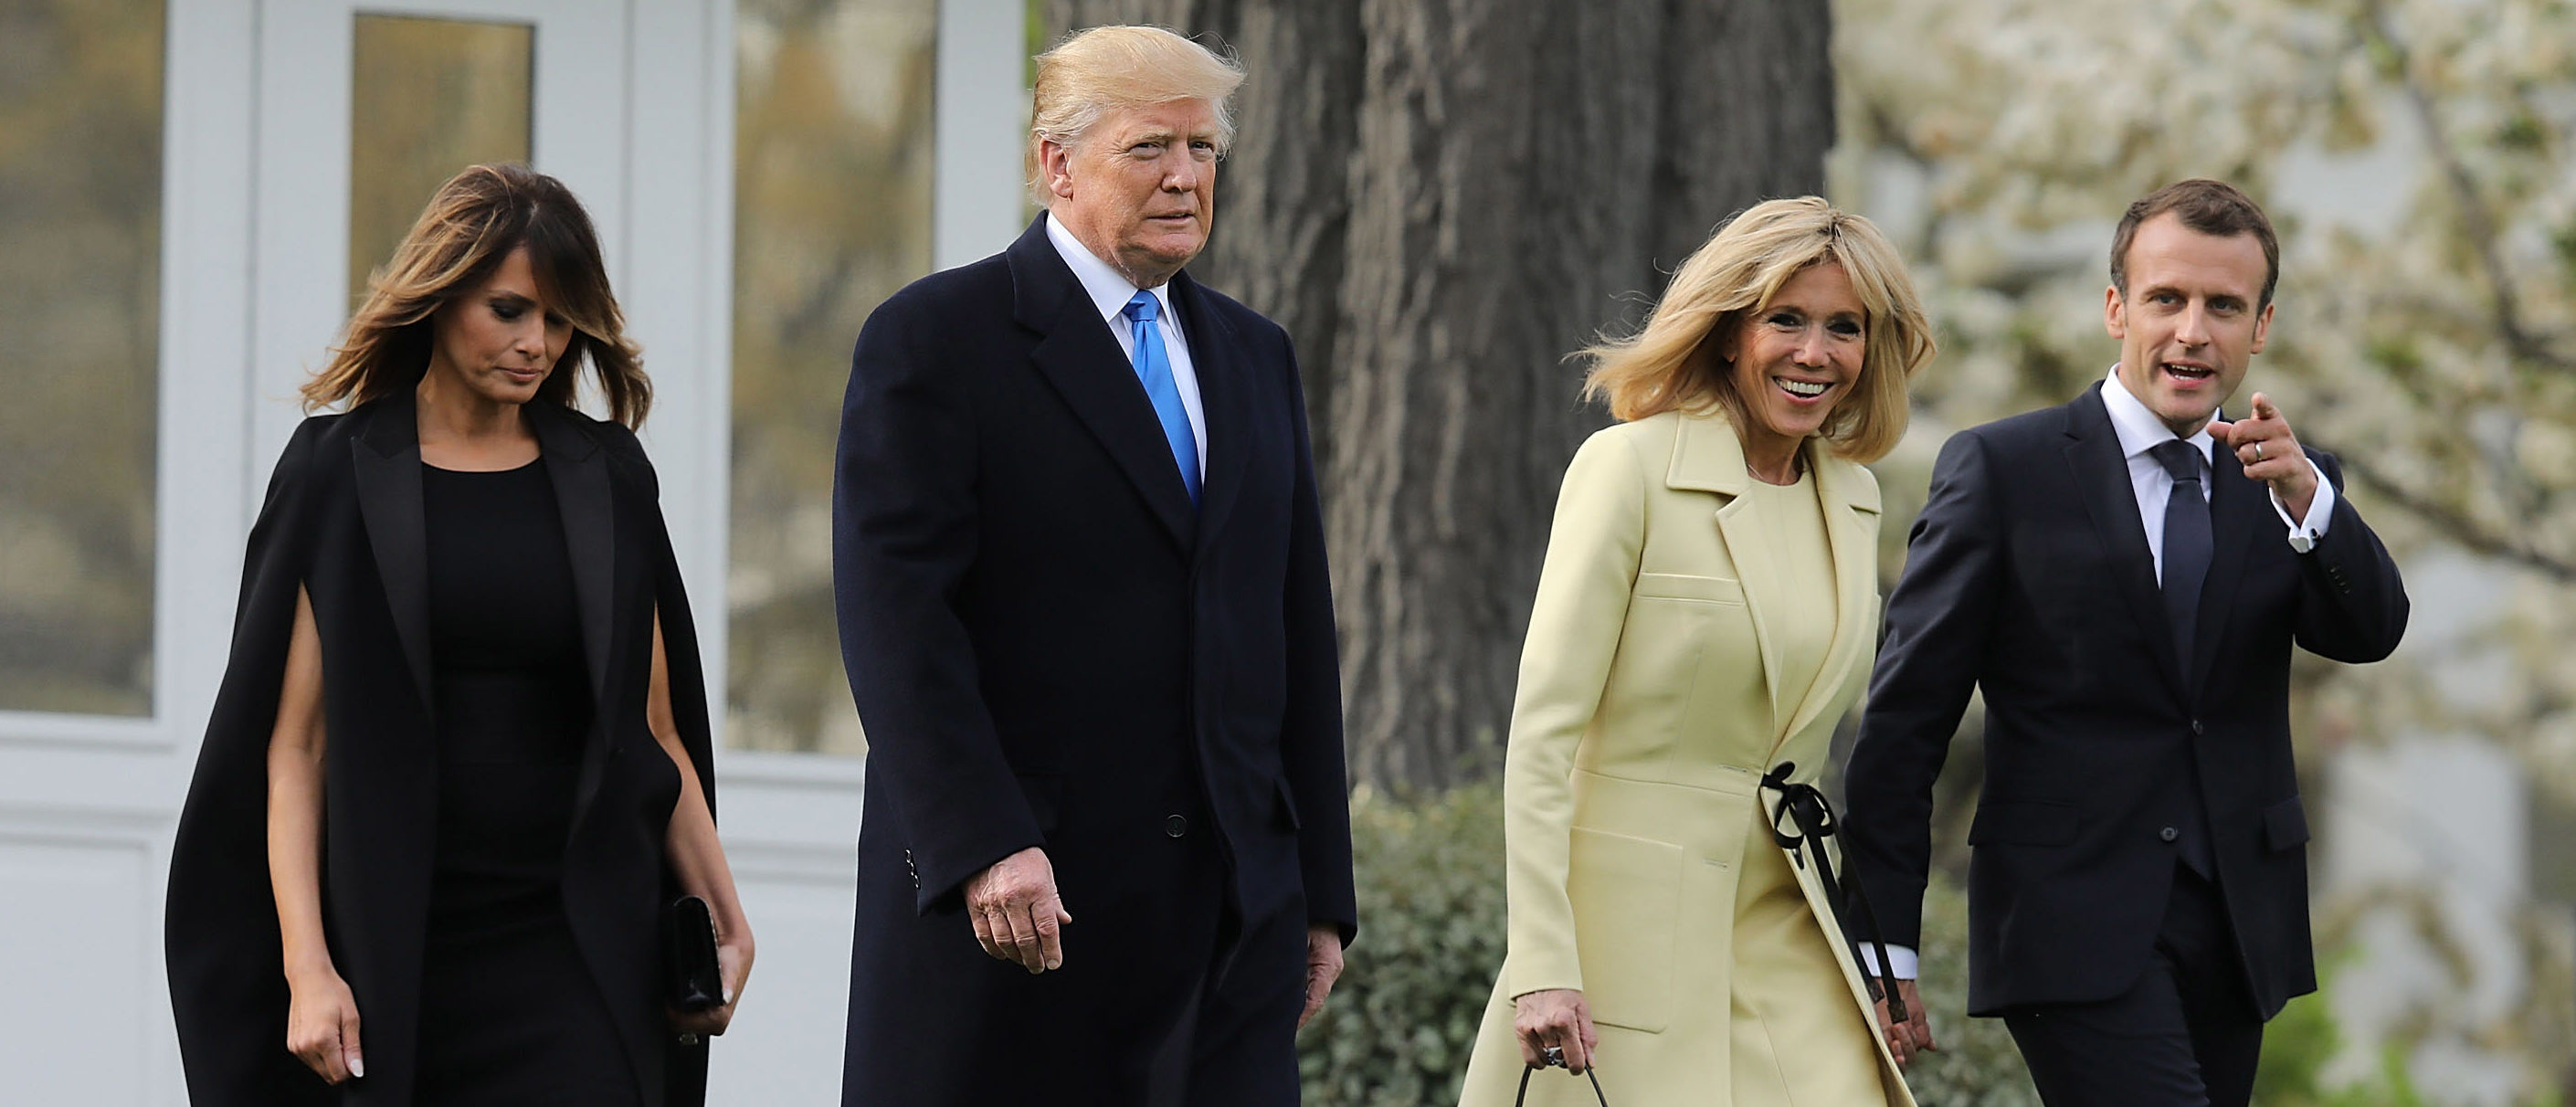 WASHINGTON, DC - APRIL 23: (L-R) U.S. first lady Melania Trump, U.S President Donald Trump, Brigitte Macron and French President Emmanuel Macron walk across the South Lawn before participating in a tree-planting ceremony at the White House April 23, 2018 in Washington, DC. Trump is hosting Macron for a two day offical visit that will include dinner at George Washington's Mount Vernon, a tree planting on the White House South Lawn and a joint news conference. (Photo by Chip Somodevilla/Getty Images)